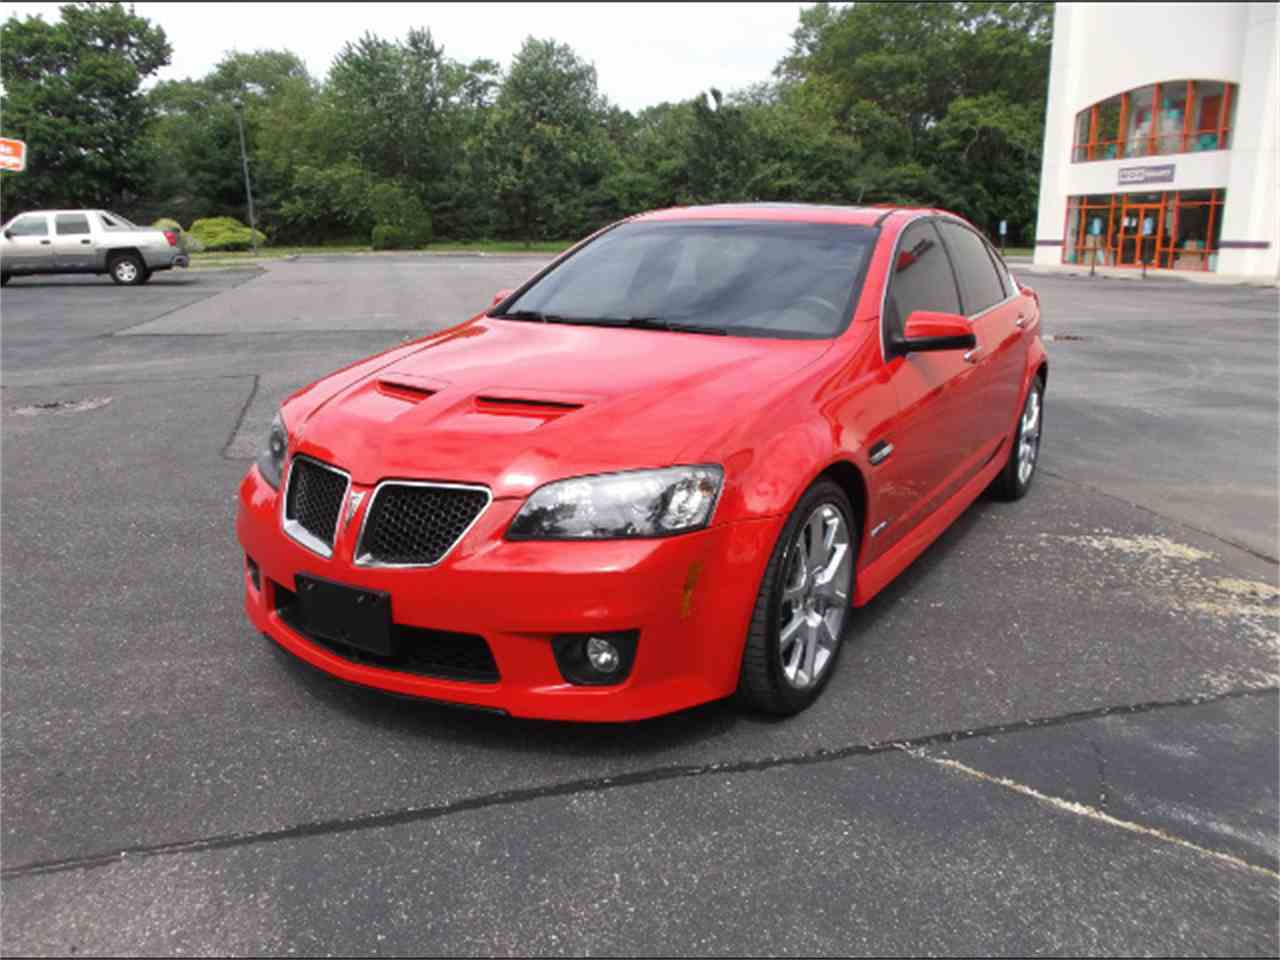 Large Picture of '09 Pontiac G8 - $25,995.00 - LDI6